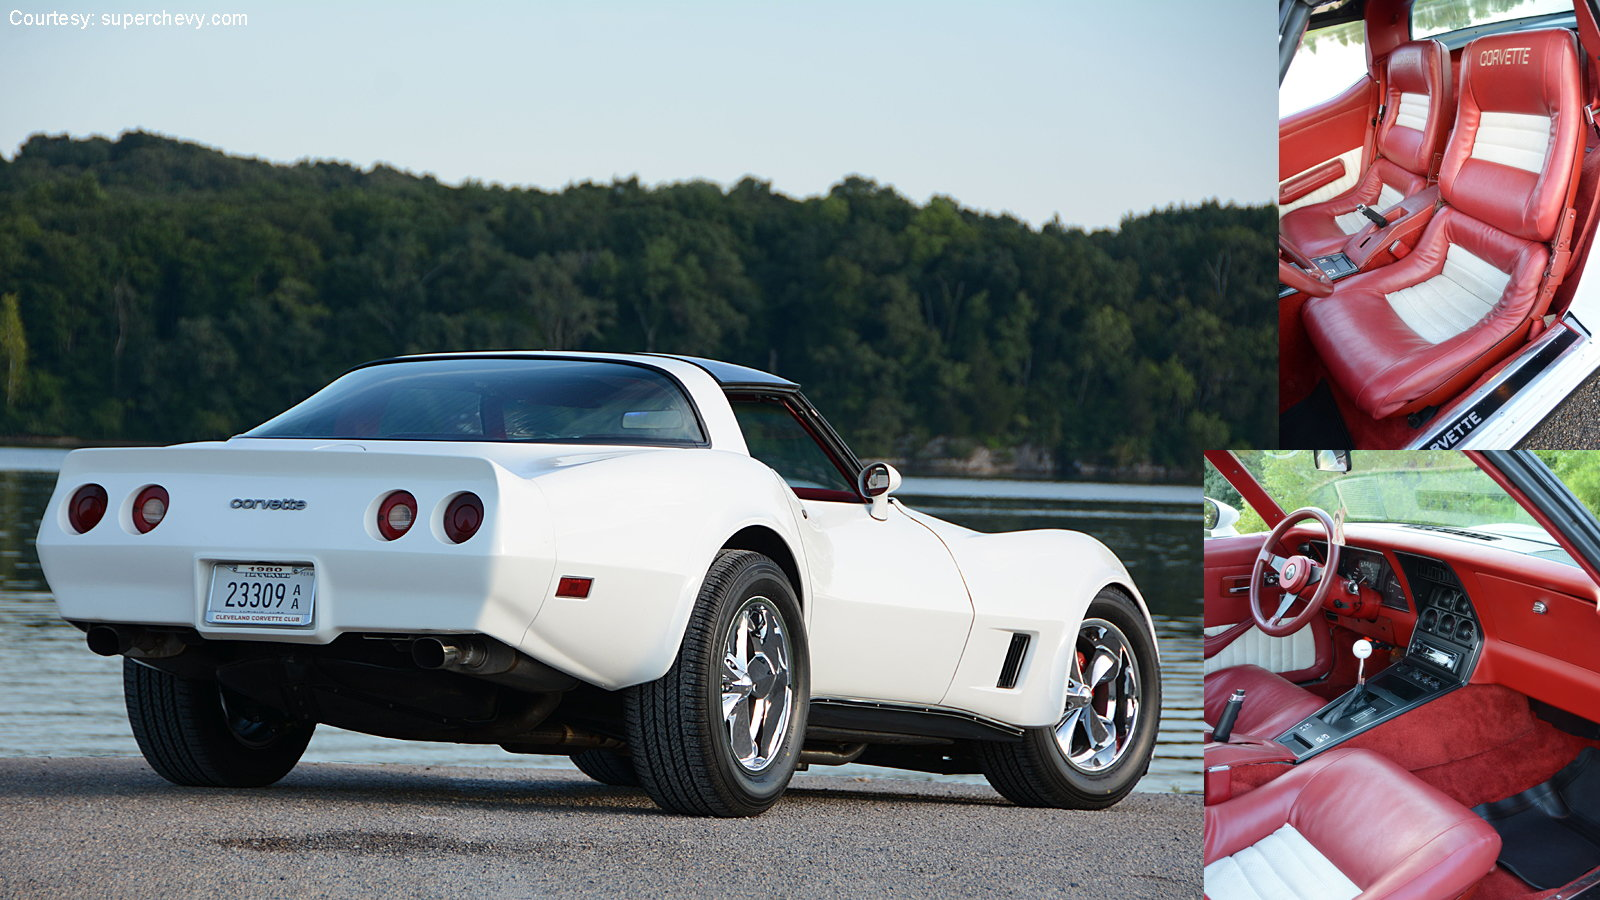 1980 Vette Gets the LS Treatment